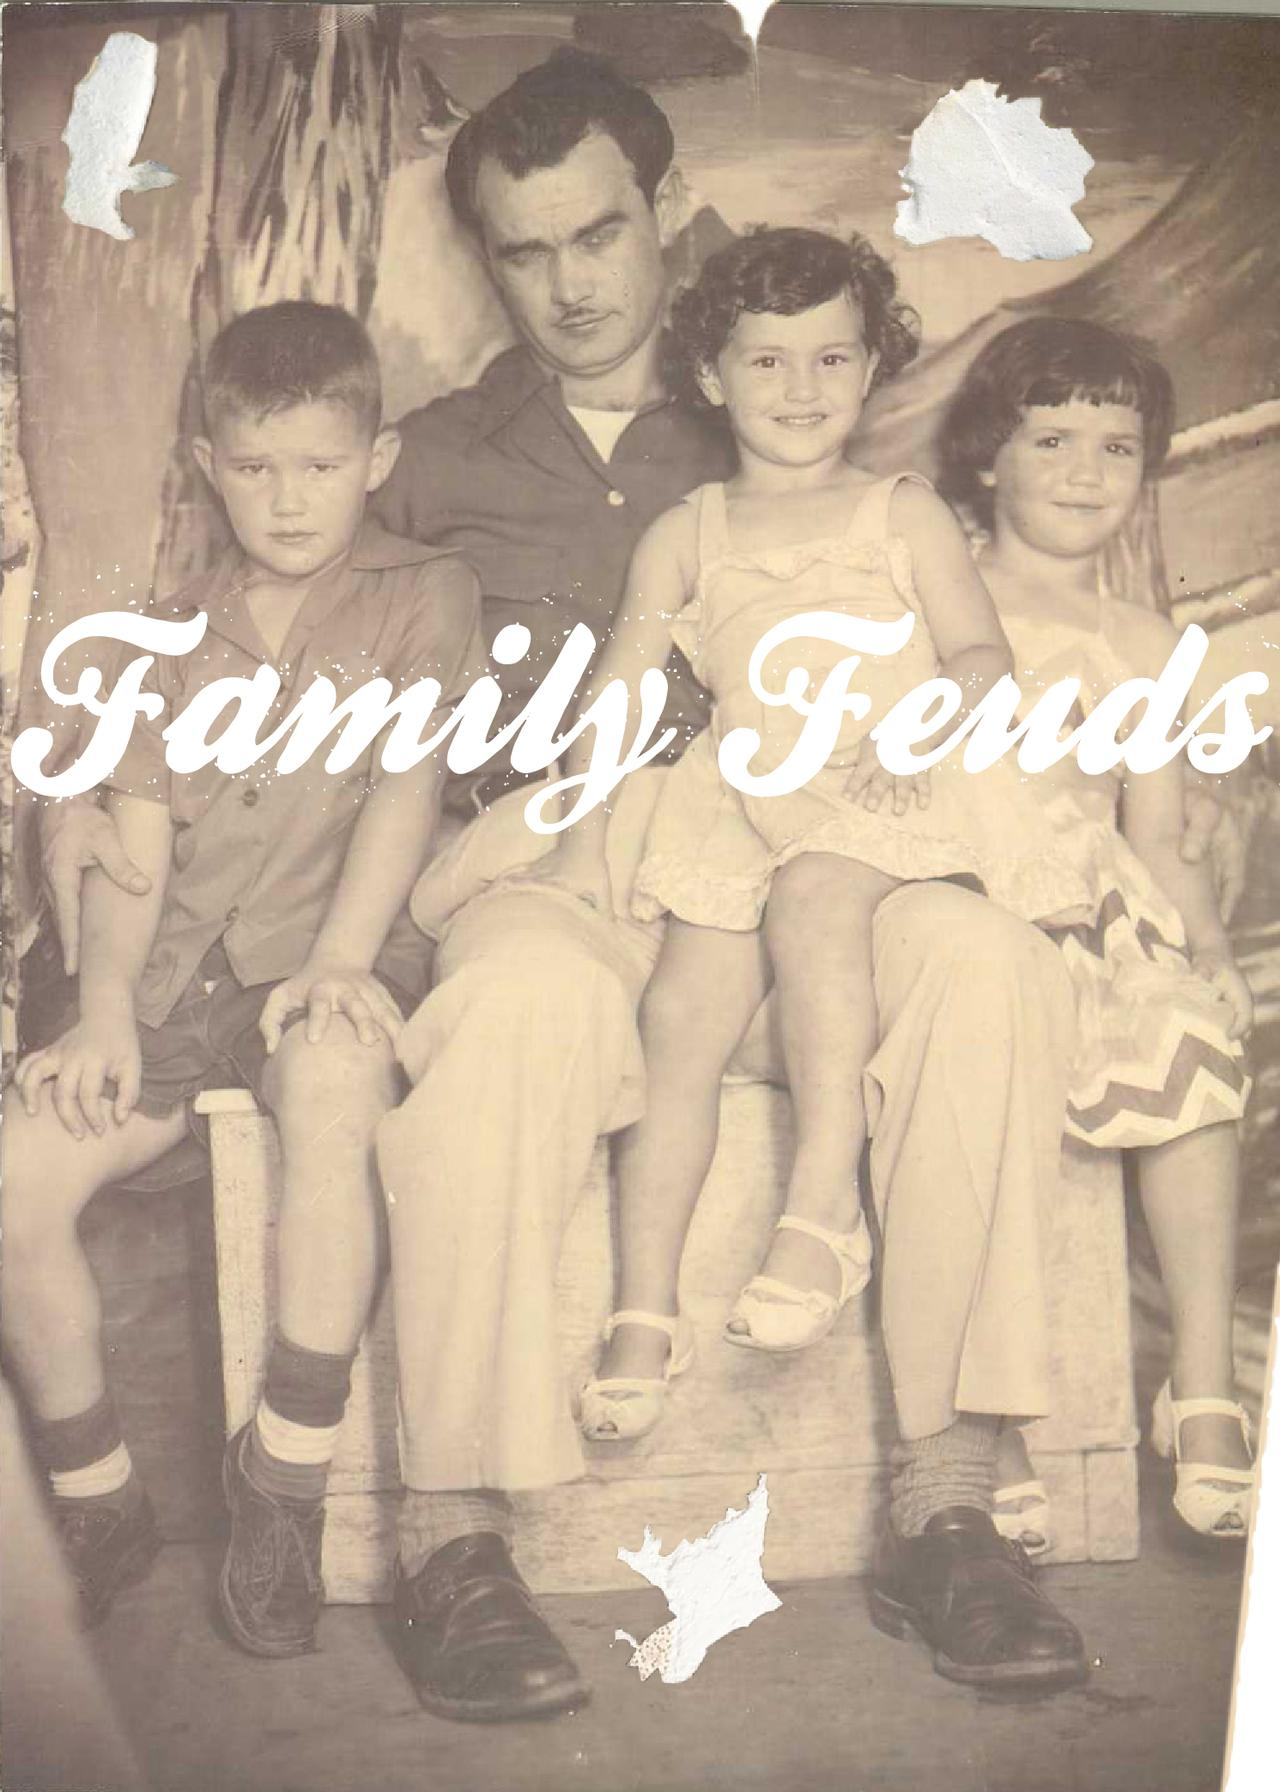 Click here for more Family Feuds stories on Narratively.